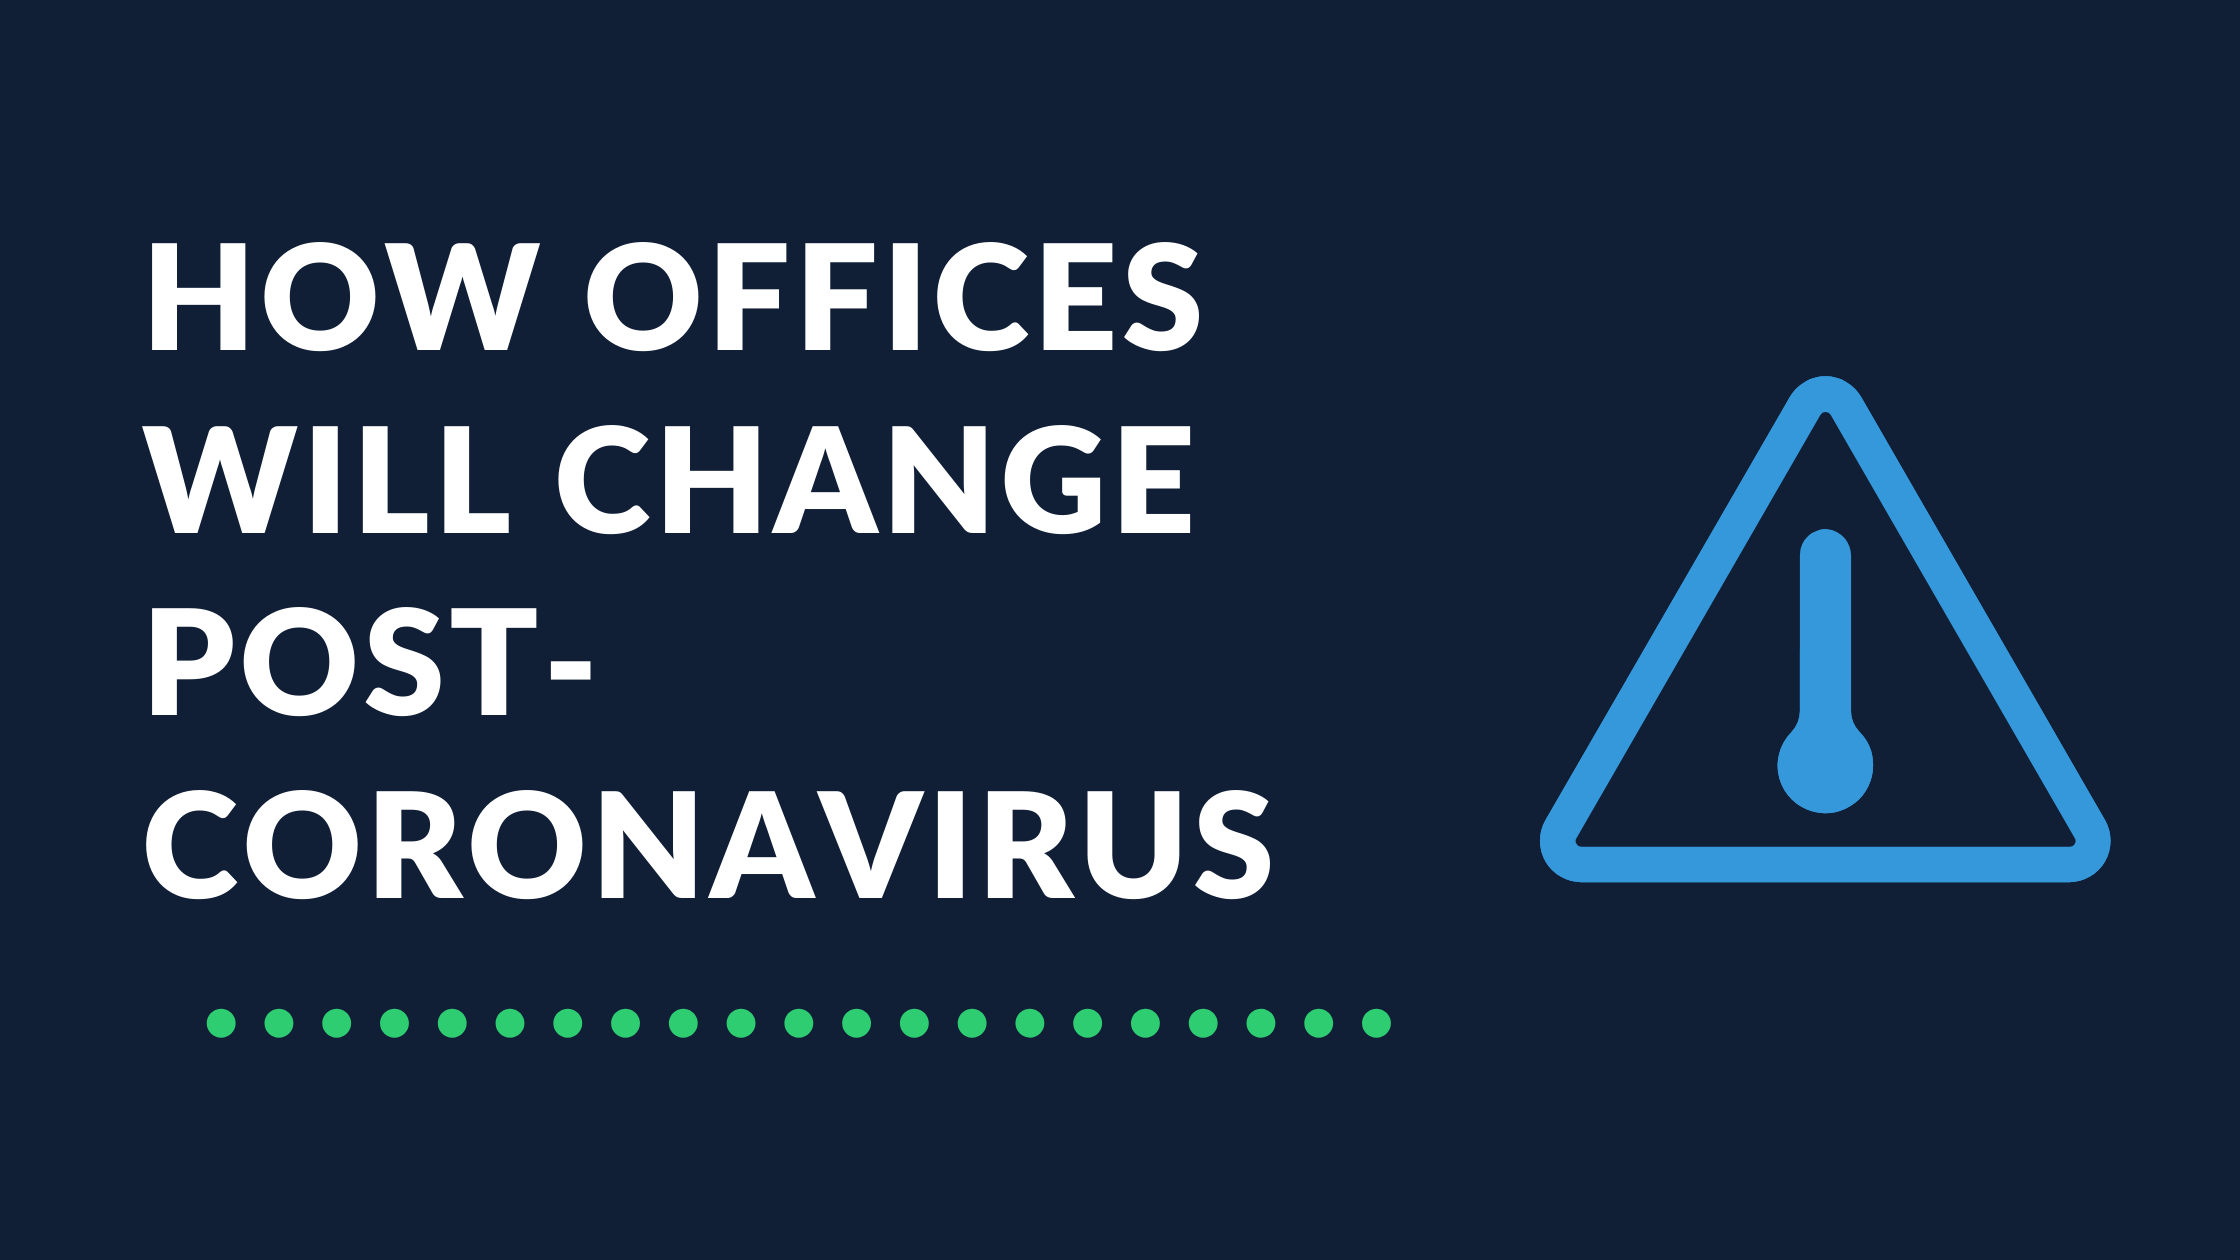 How Offices Will Change Post-Coronavirus [Infographic]